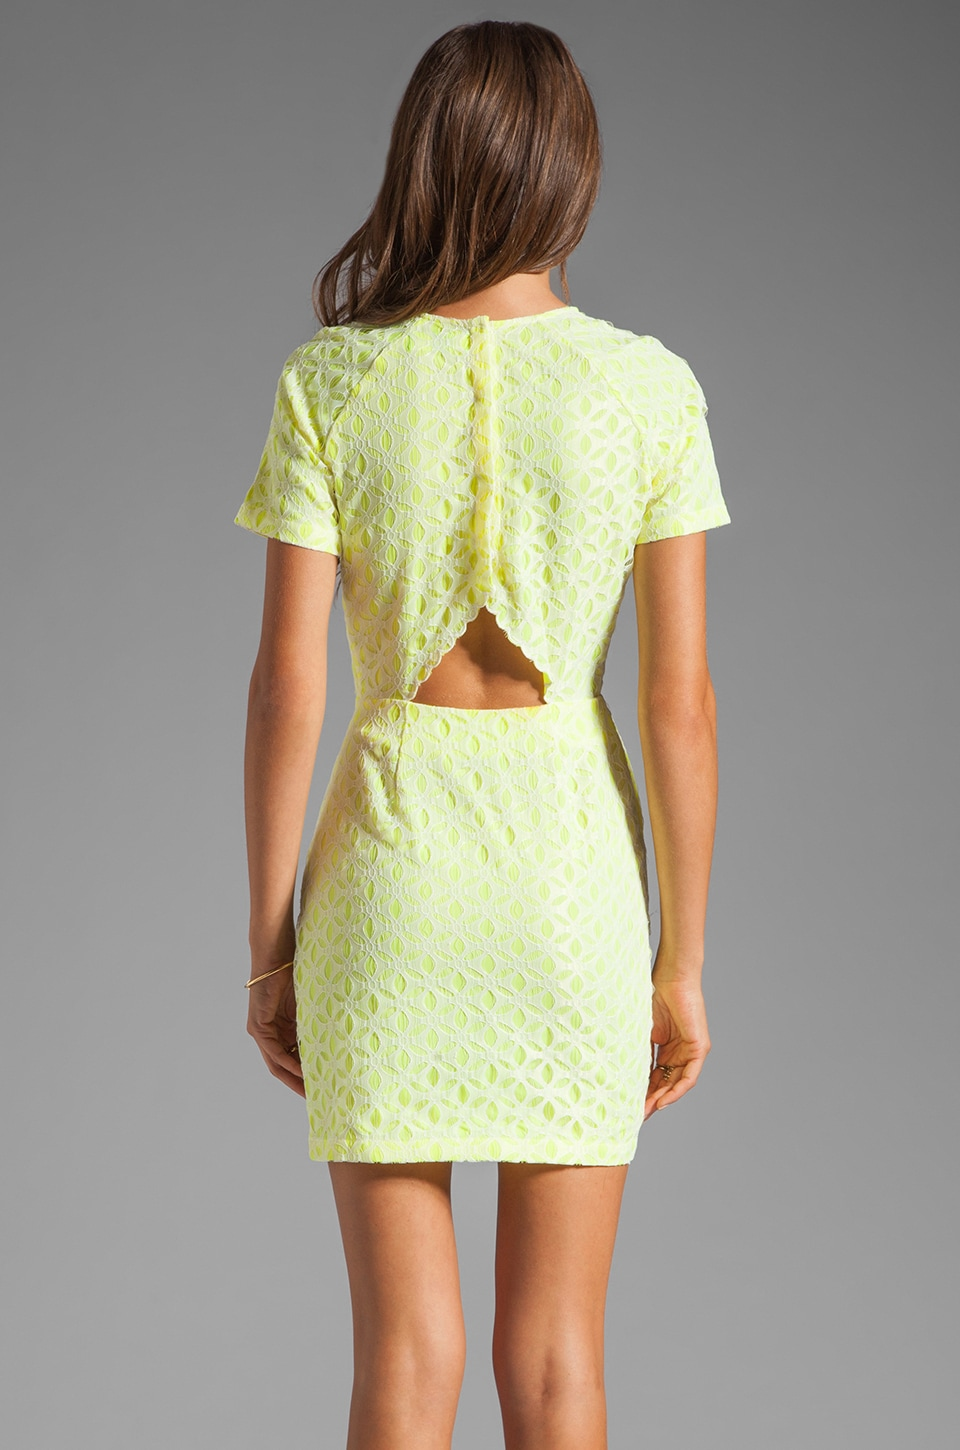 Dolce Vita Ritsa Dress in Cream/Yellow